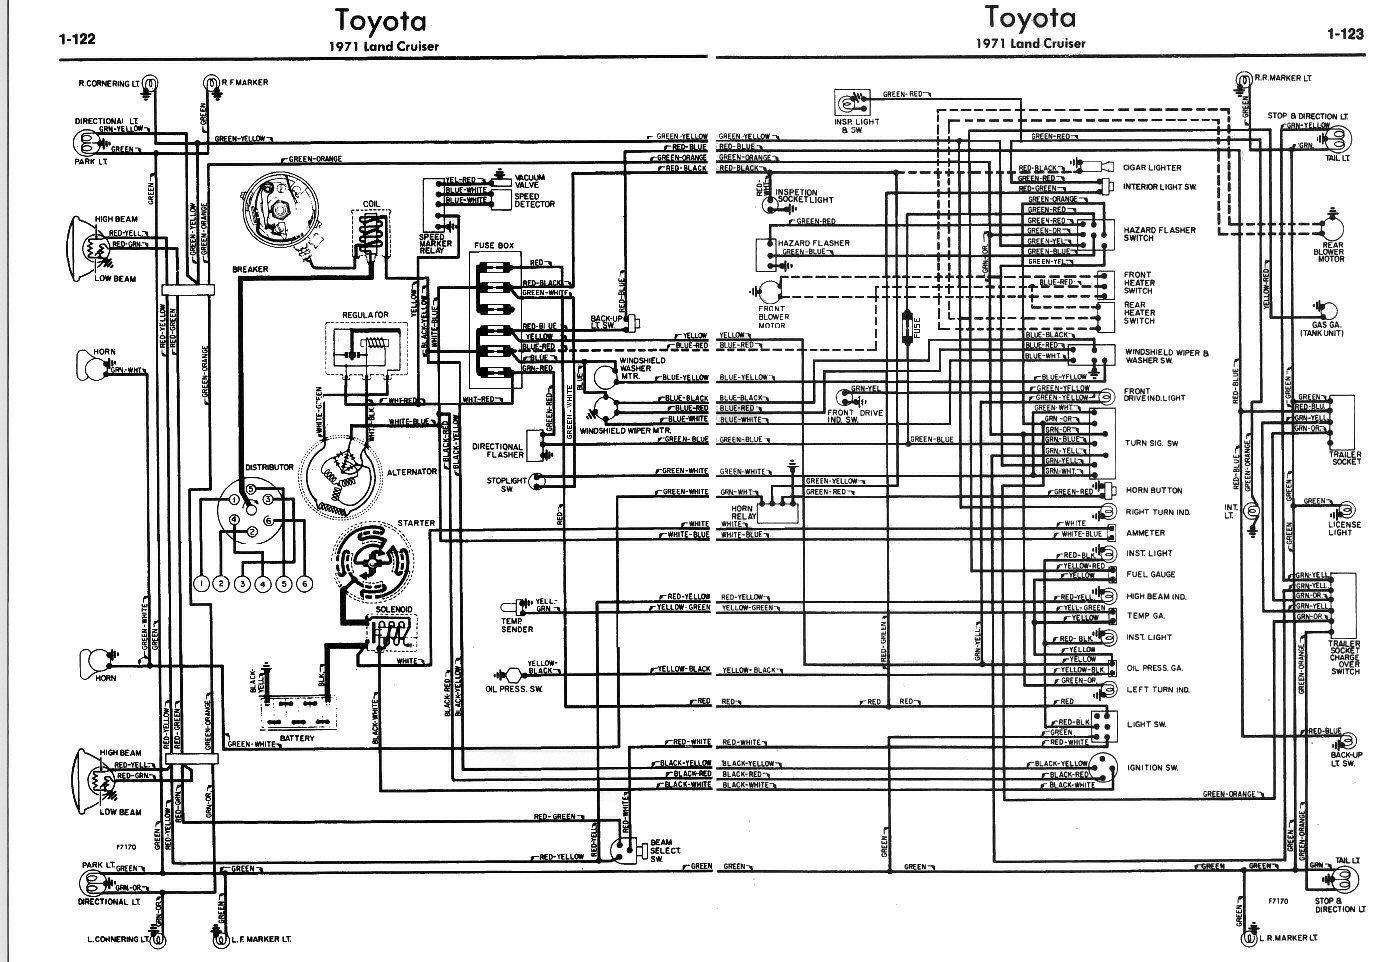 1971 untitled document 72 fj40 wiring diagram at creativeand.co